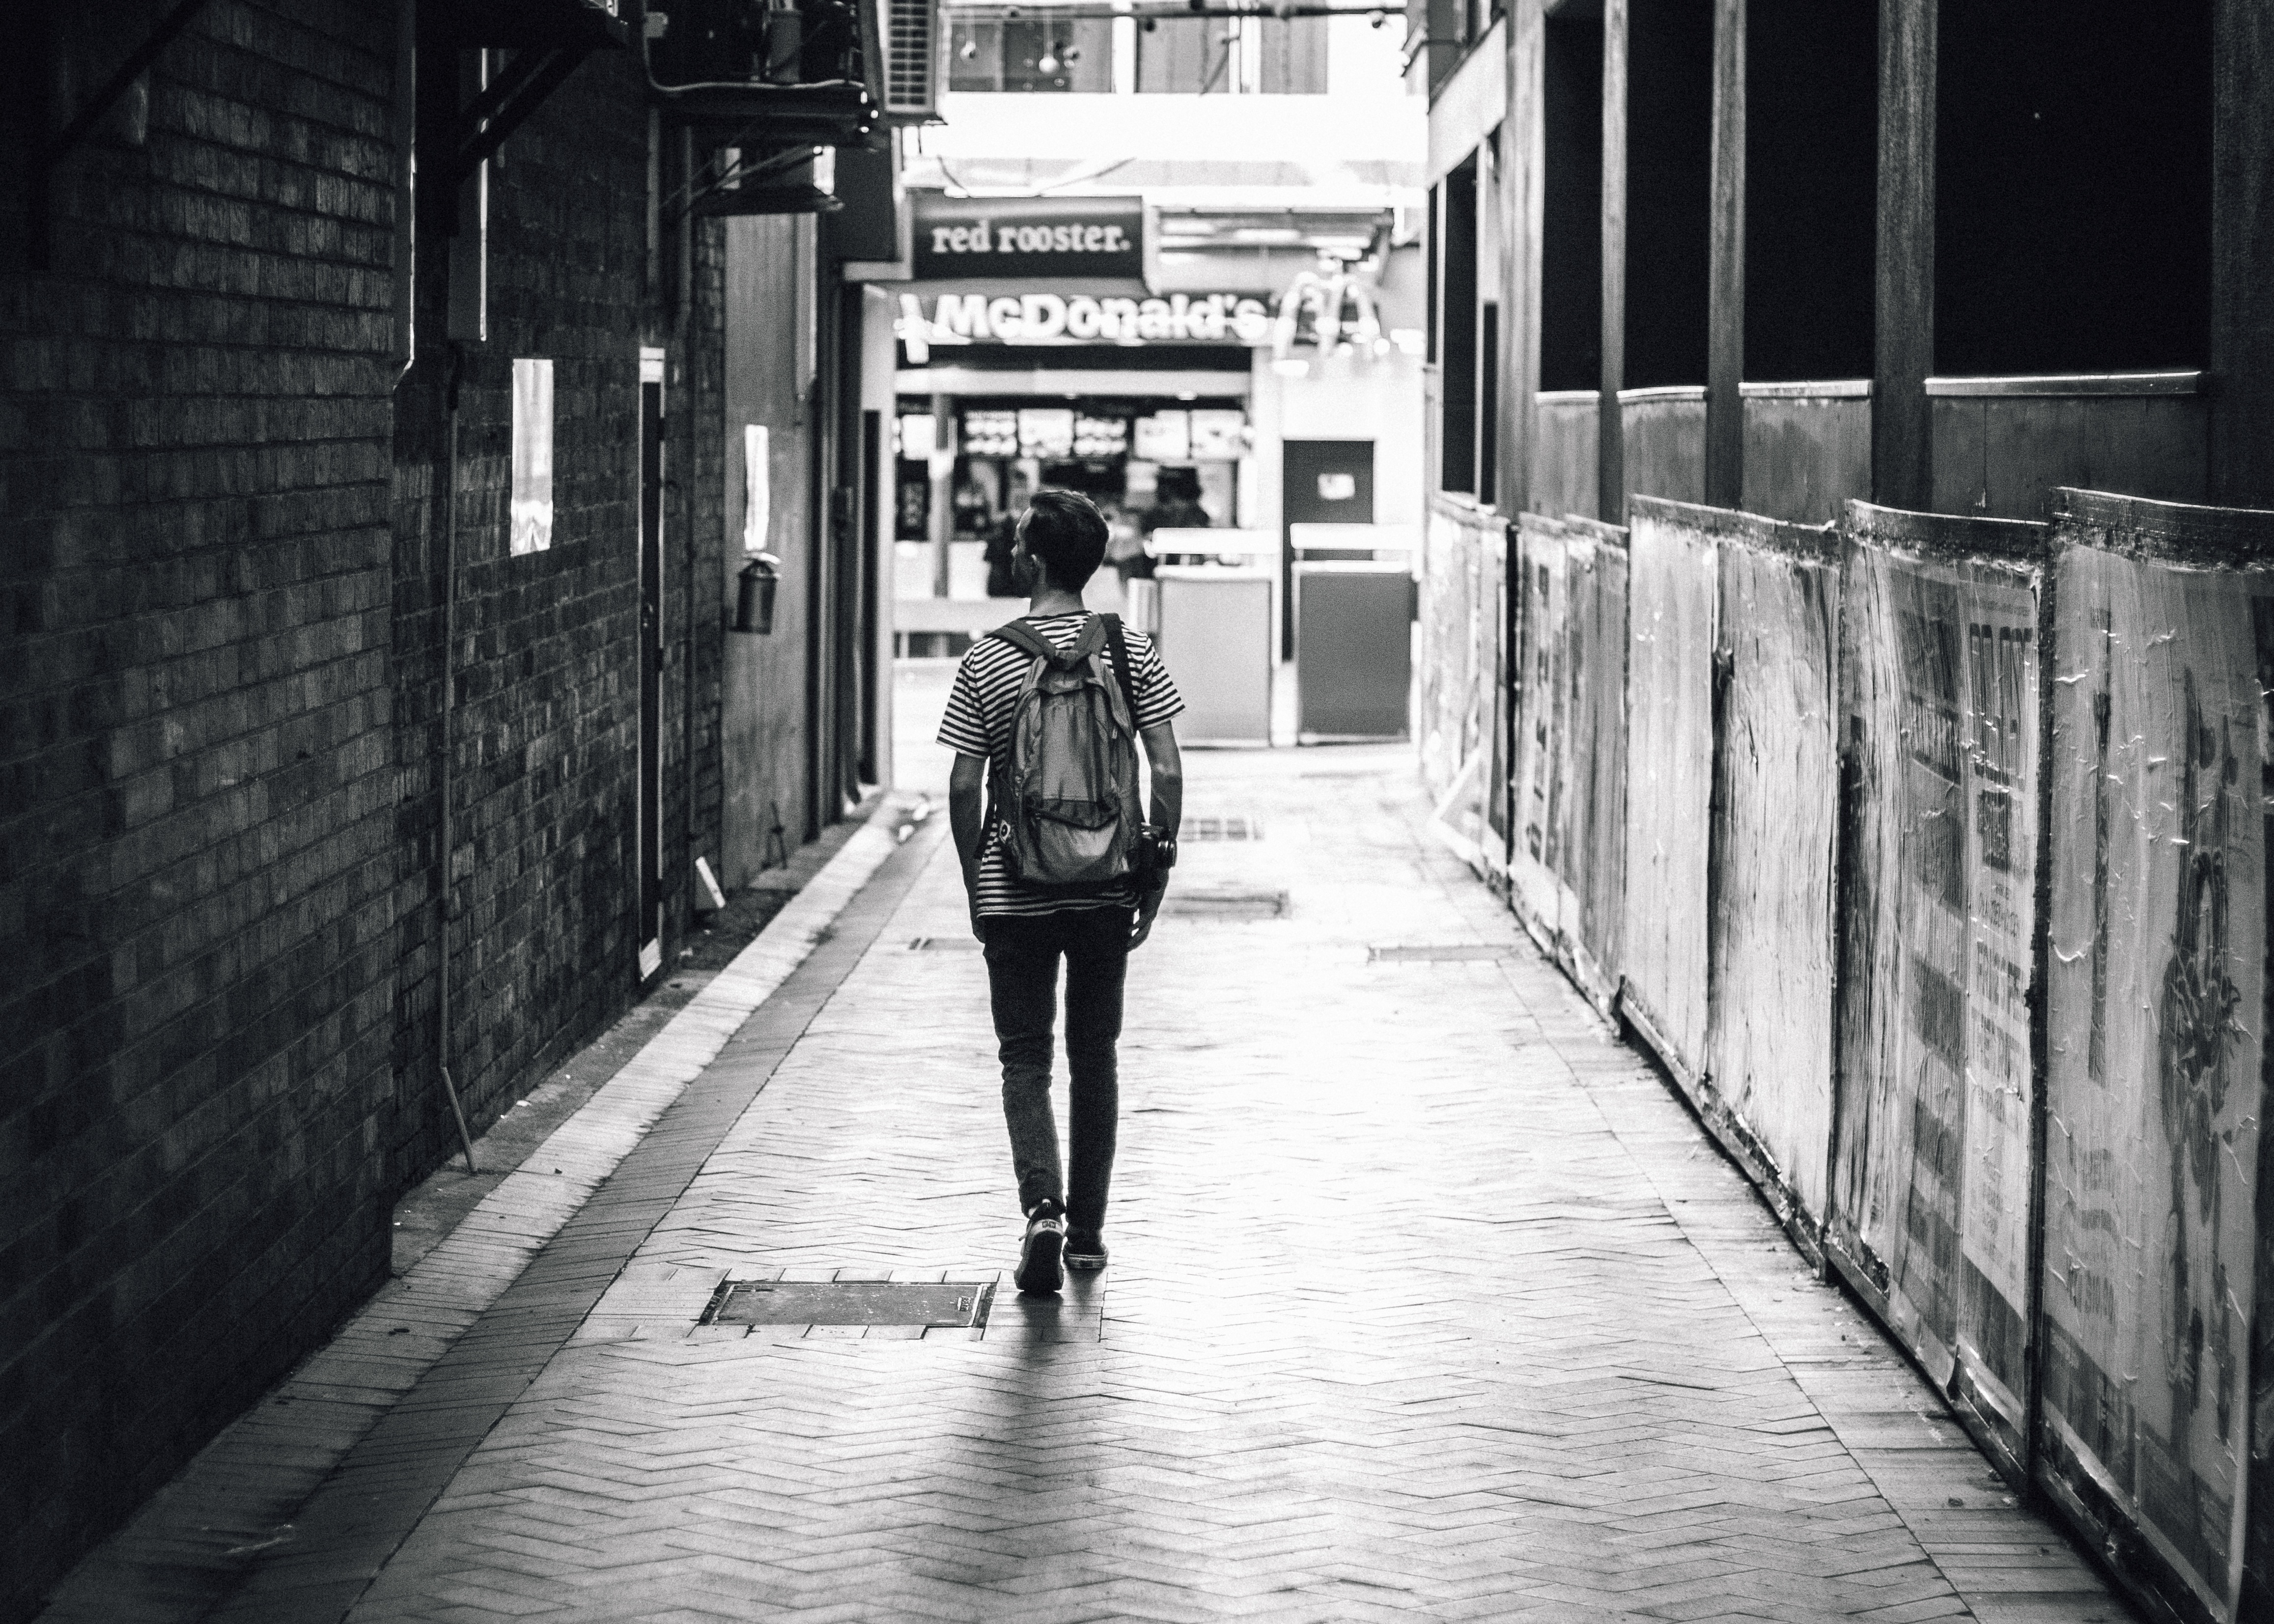 15 things i wish i told myself when i was unemployed and depressed